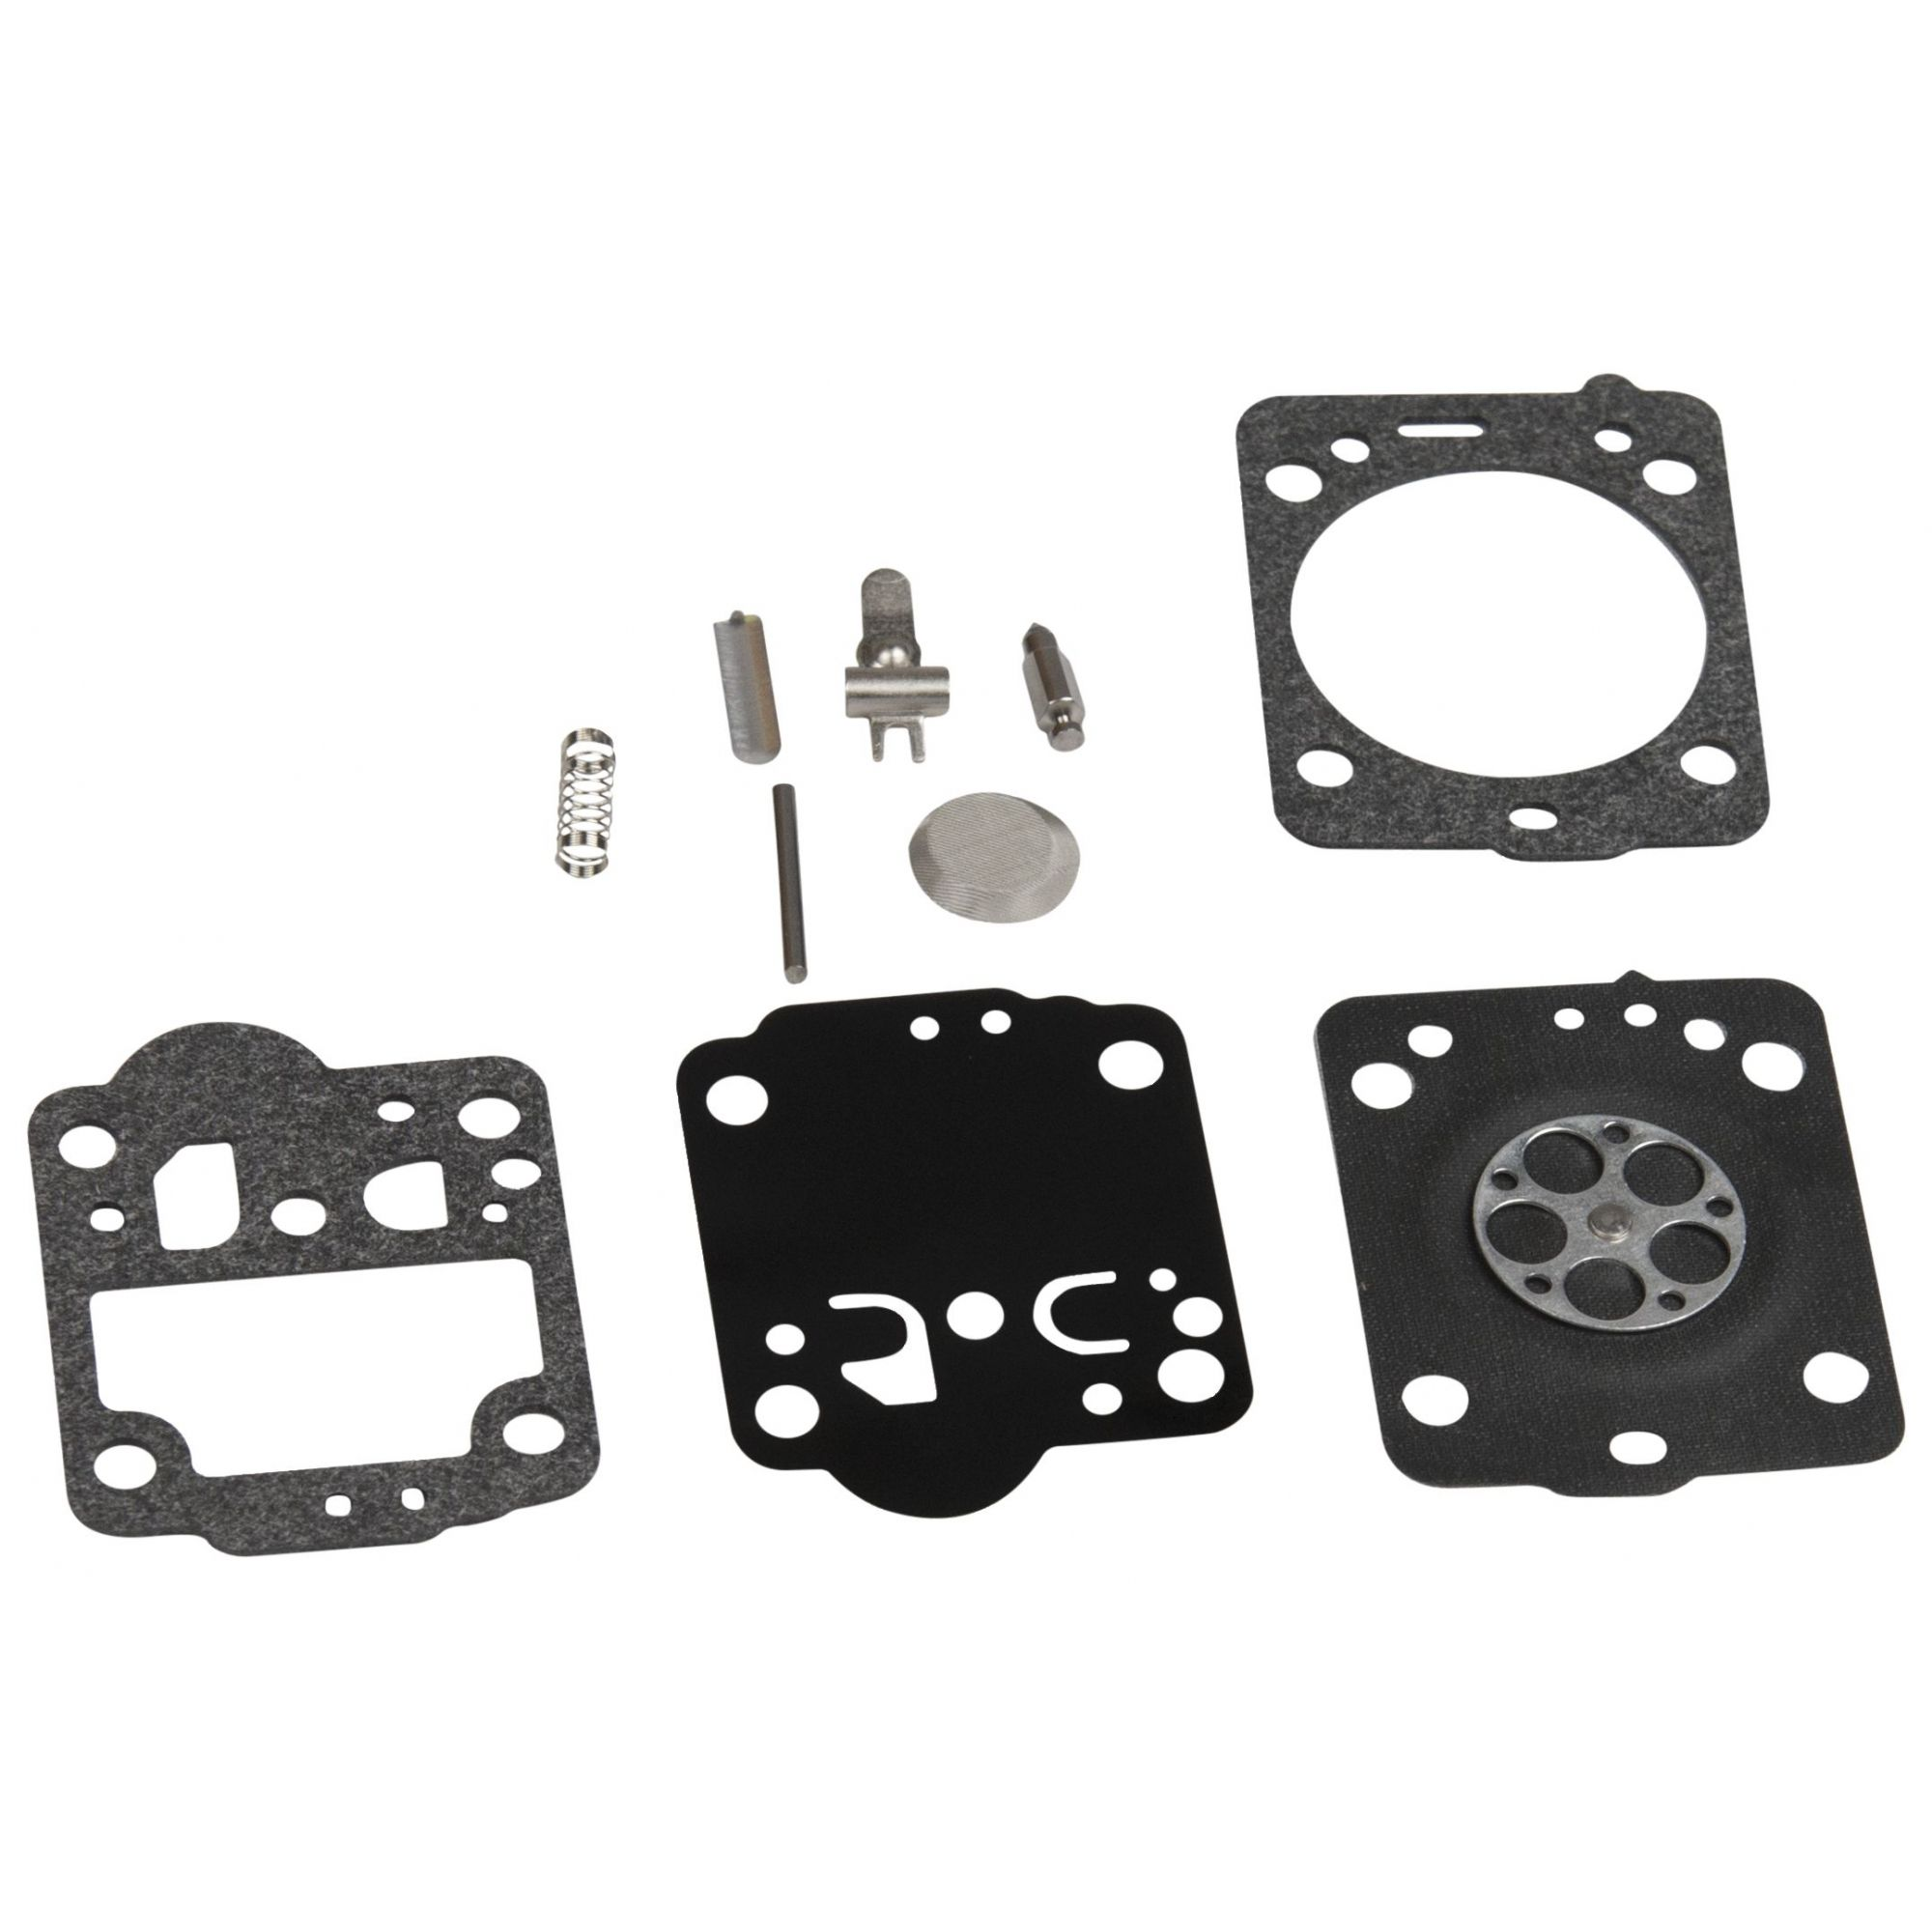 Kit Reparo do Carburador Motosserra Husqvarna 236E - 545008032